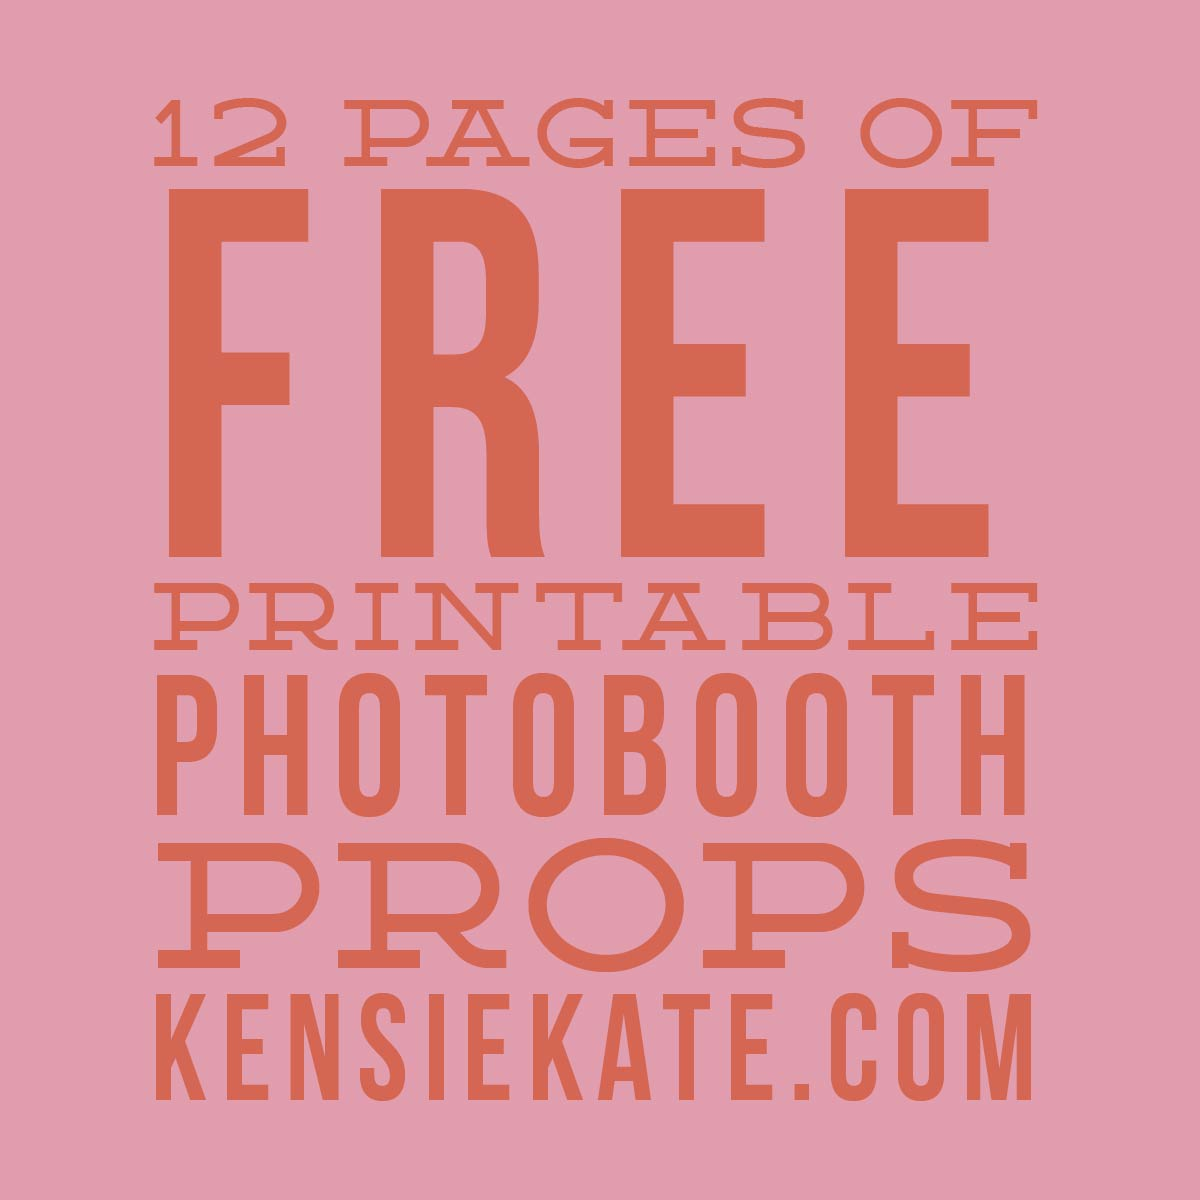 12 Pages Of Free Printable Photobooth Props Kensie Kate